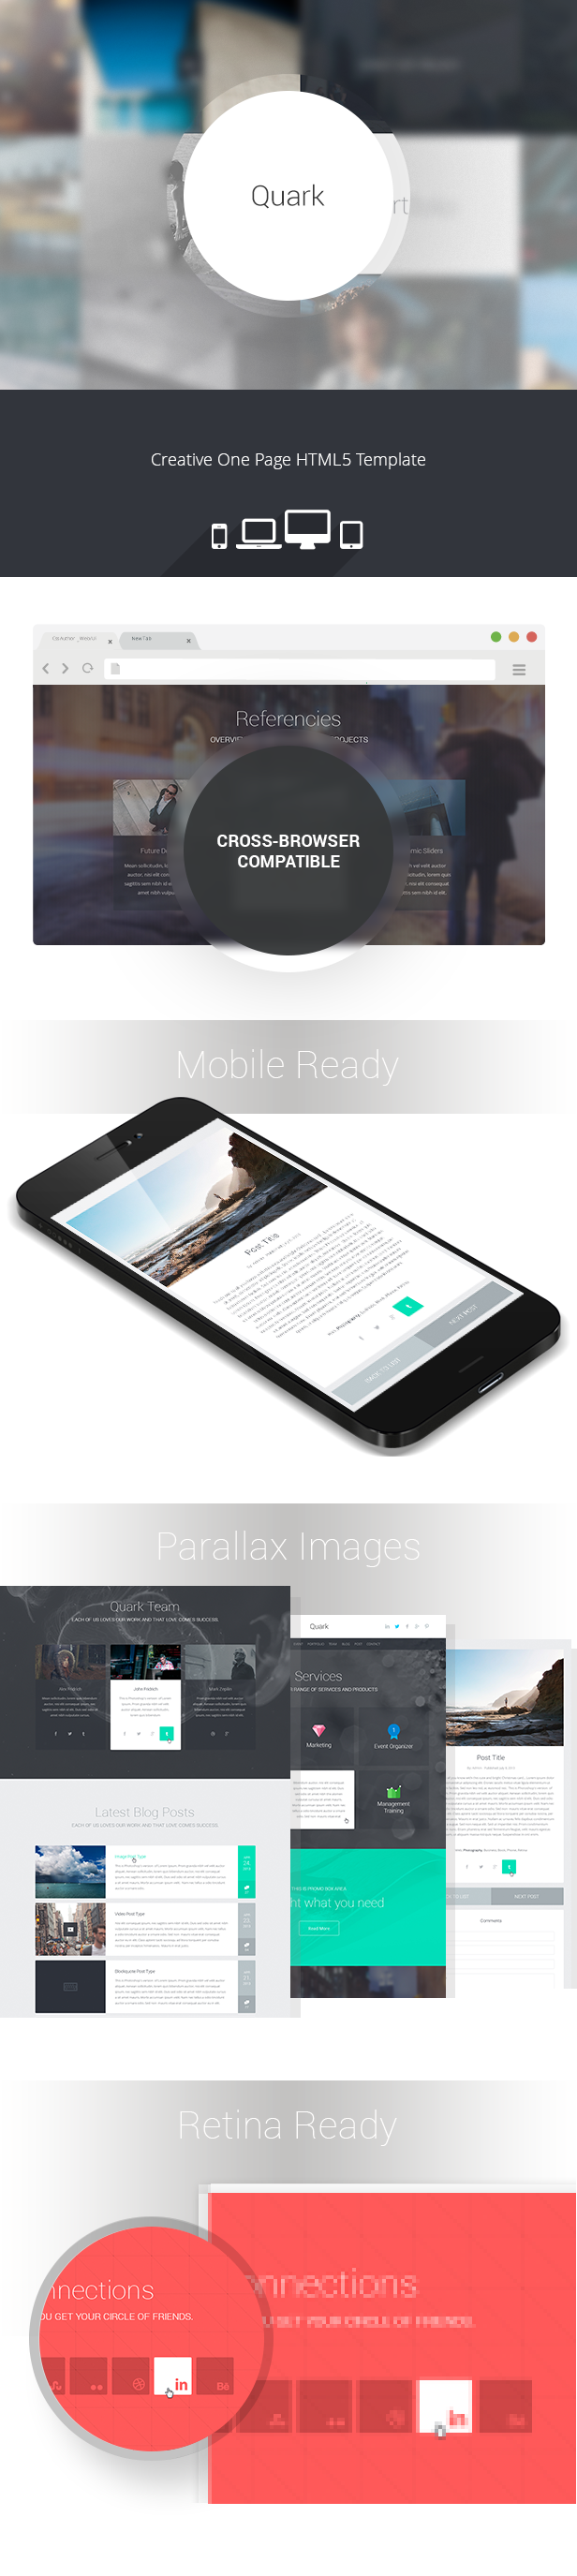 Quark - responsive one page HTML5 template (Corporate) - http ...